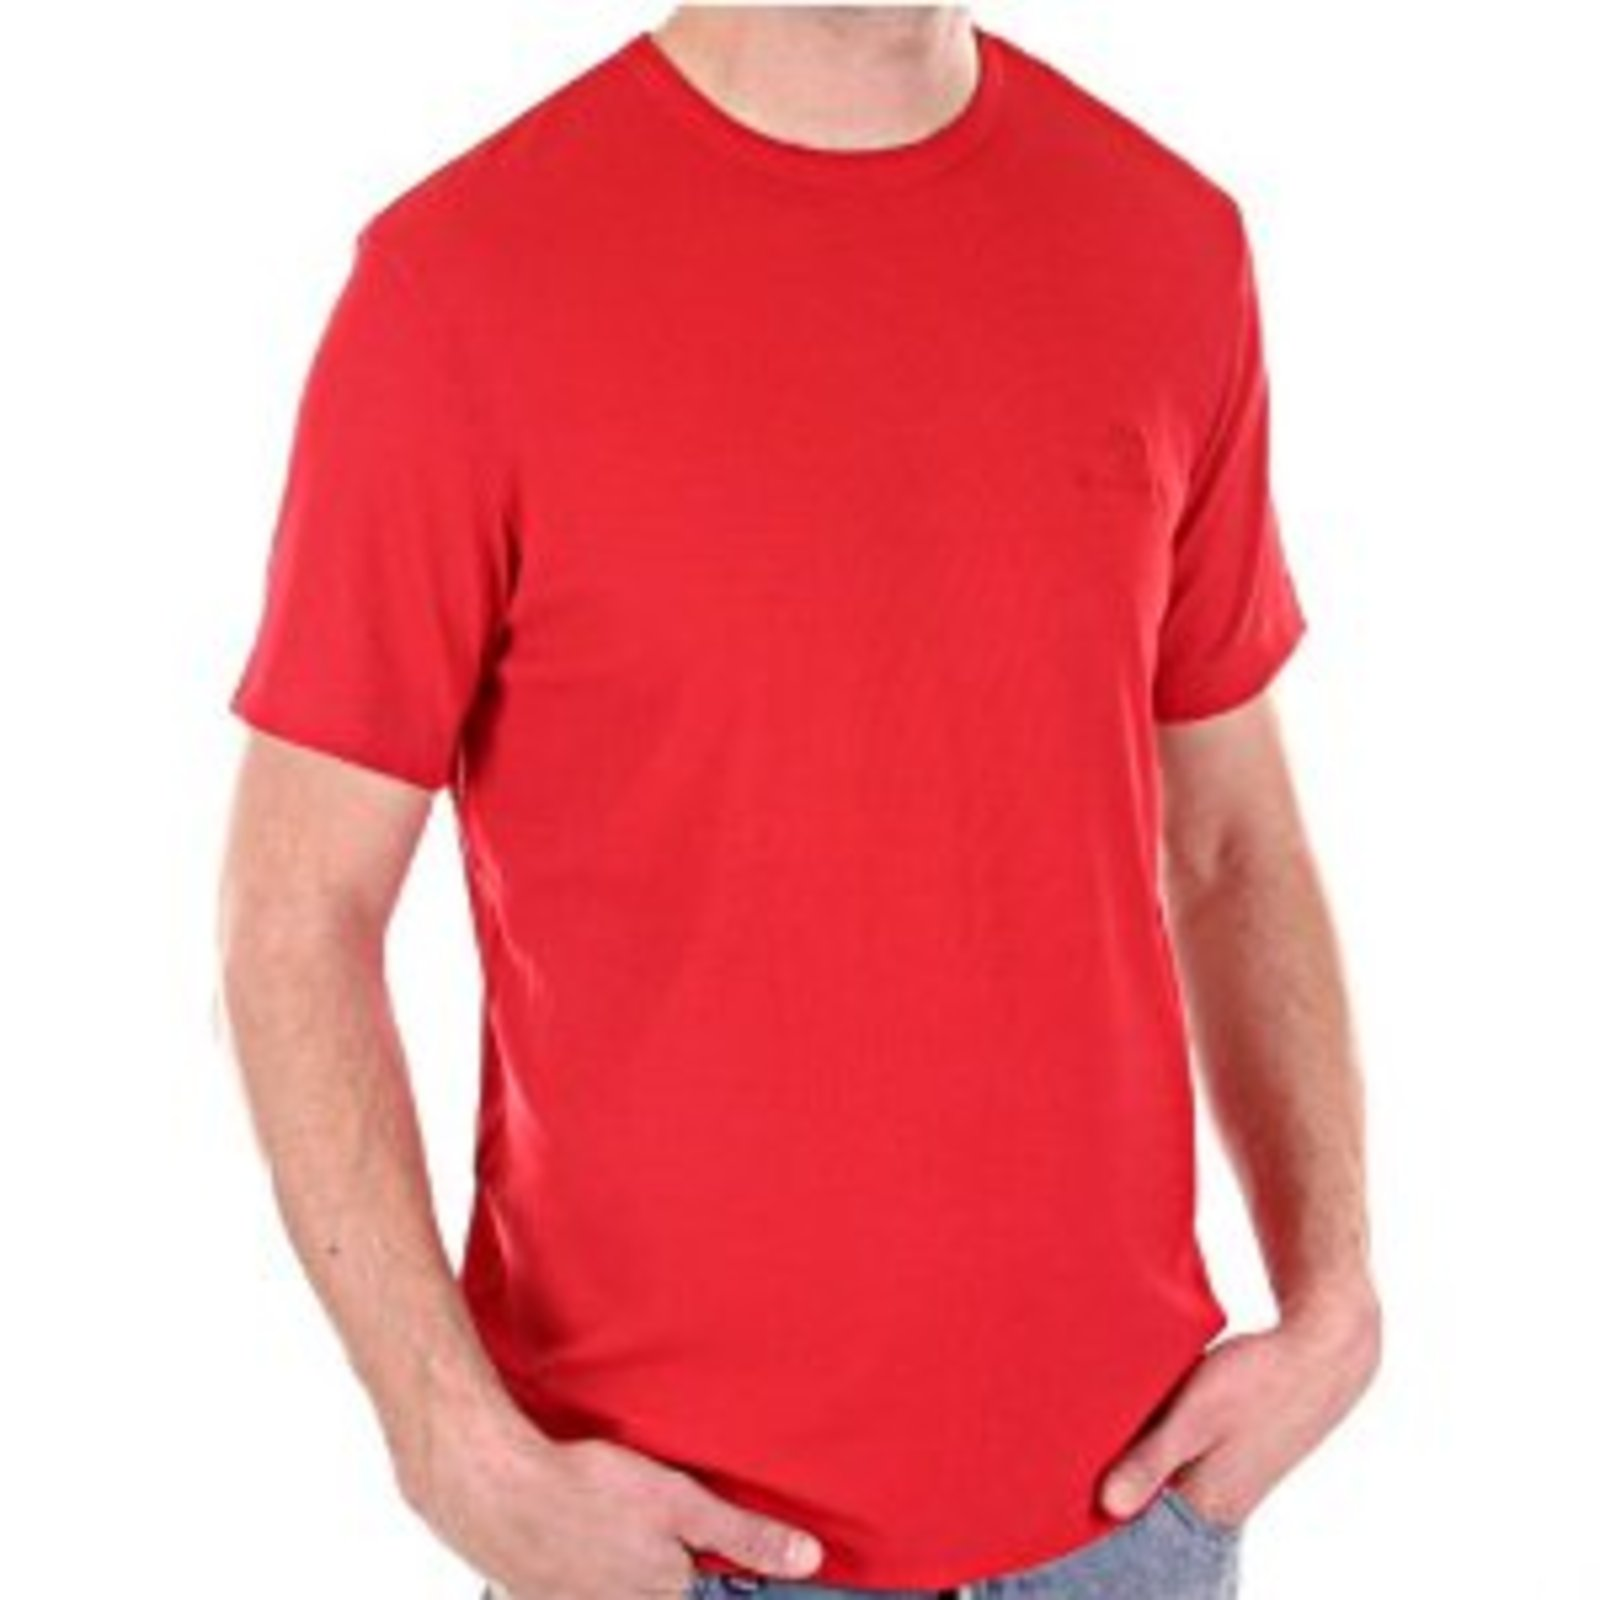 Versace T Shirt Mens Red Crew Neck Vjcm3668 At Togged Clothing